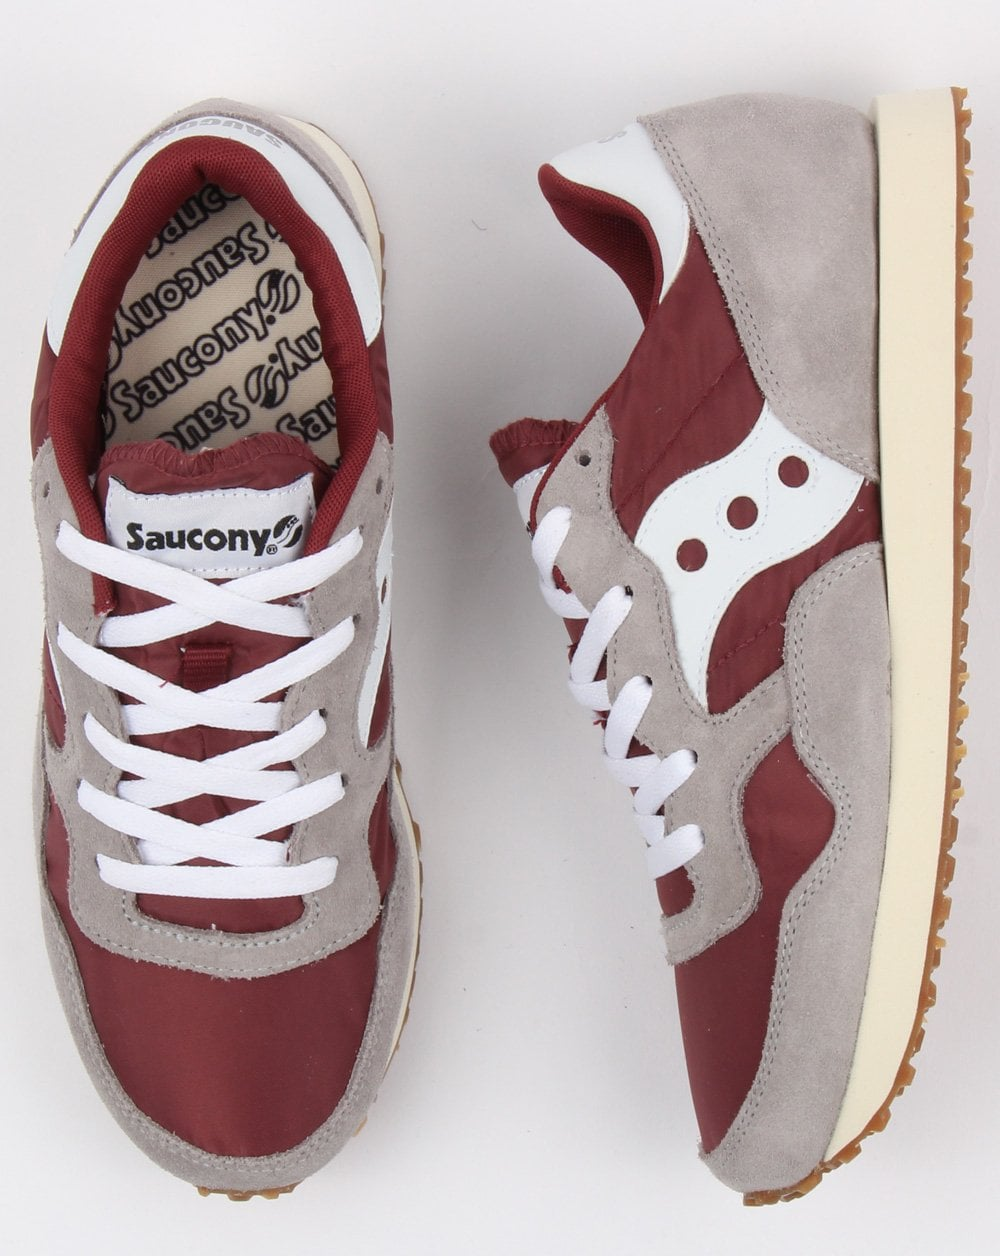 97179a5cd7ad1 Saucony Dxn Trainers Grey/maroon